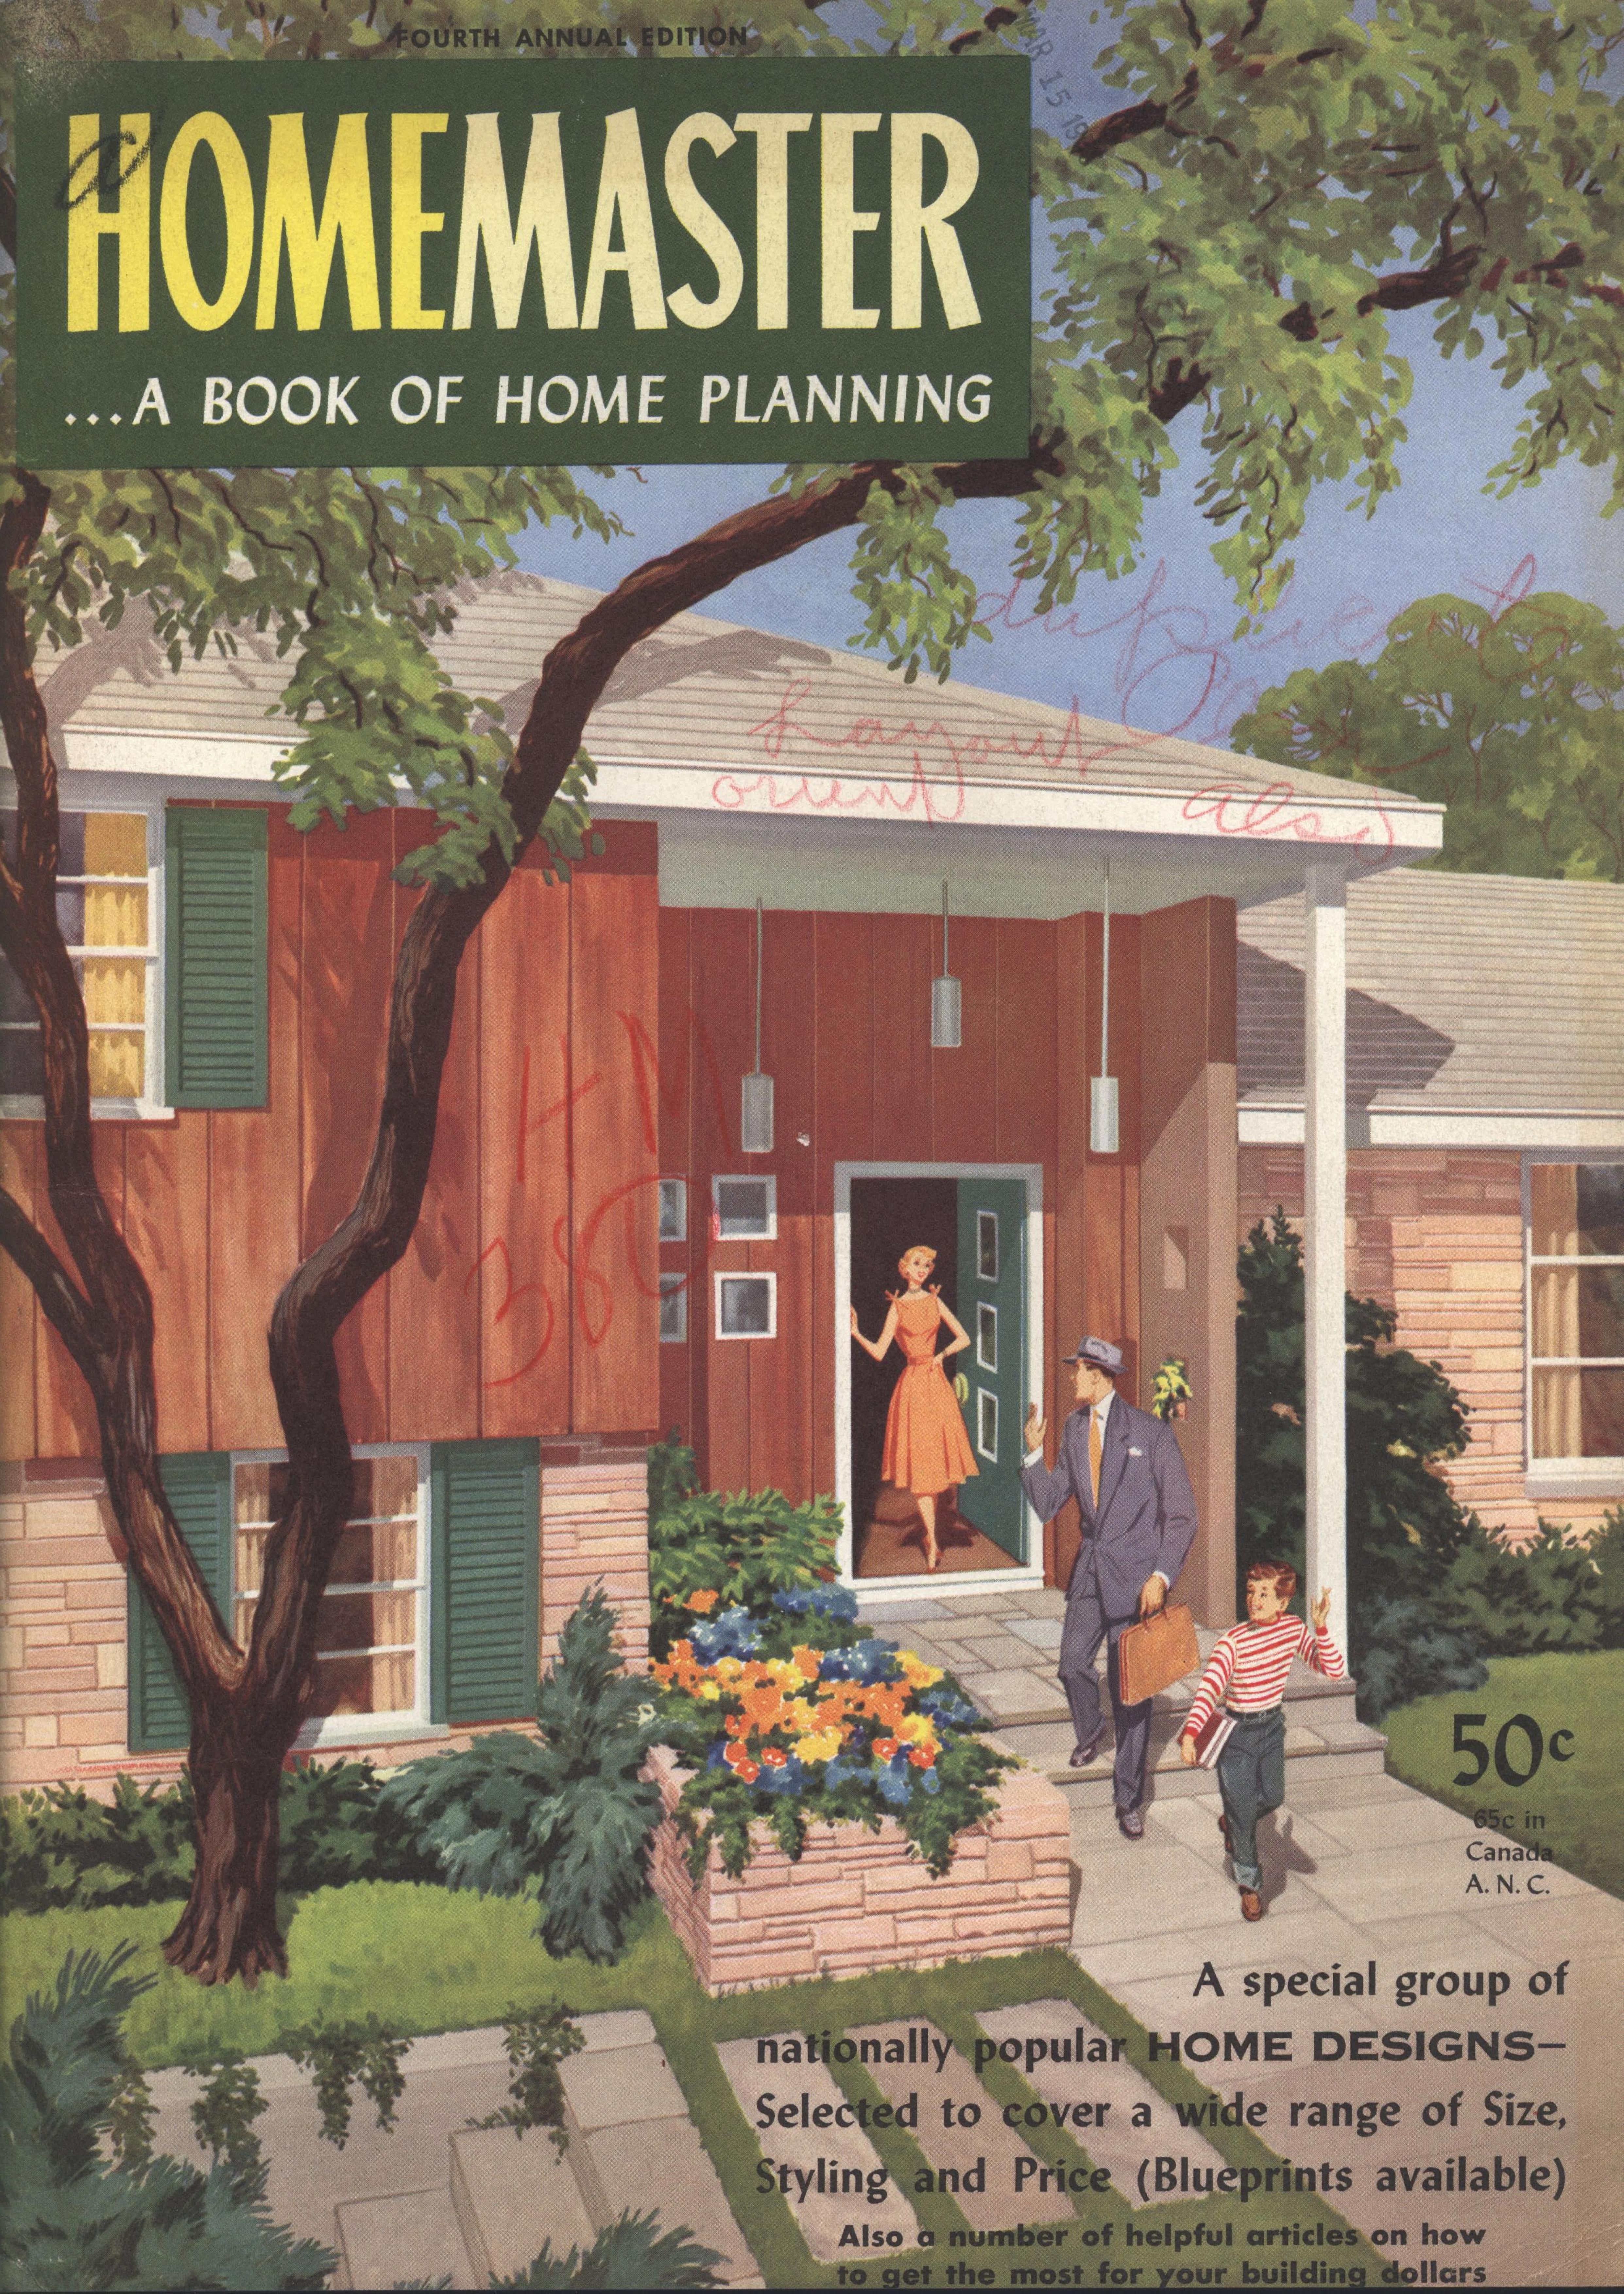 Homemaster A Book Of Home Planning 4th Ed Homemaster Publications Inc Free Dow In 2020 House Plans With Pictures Vintage House Plans House And Home Magazine